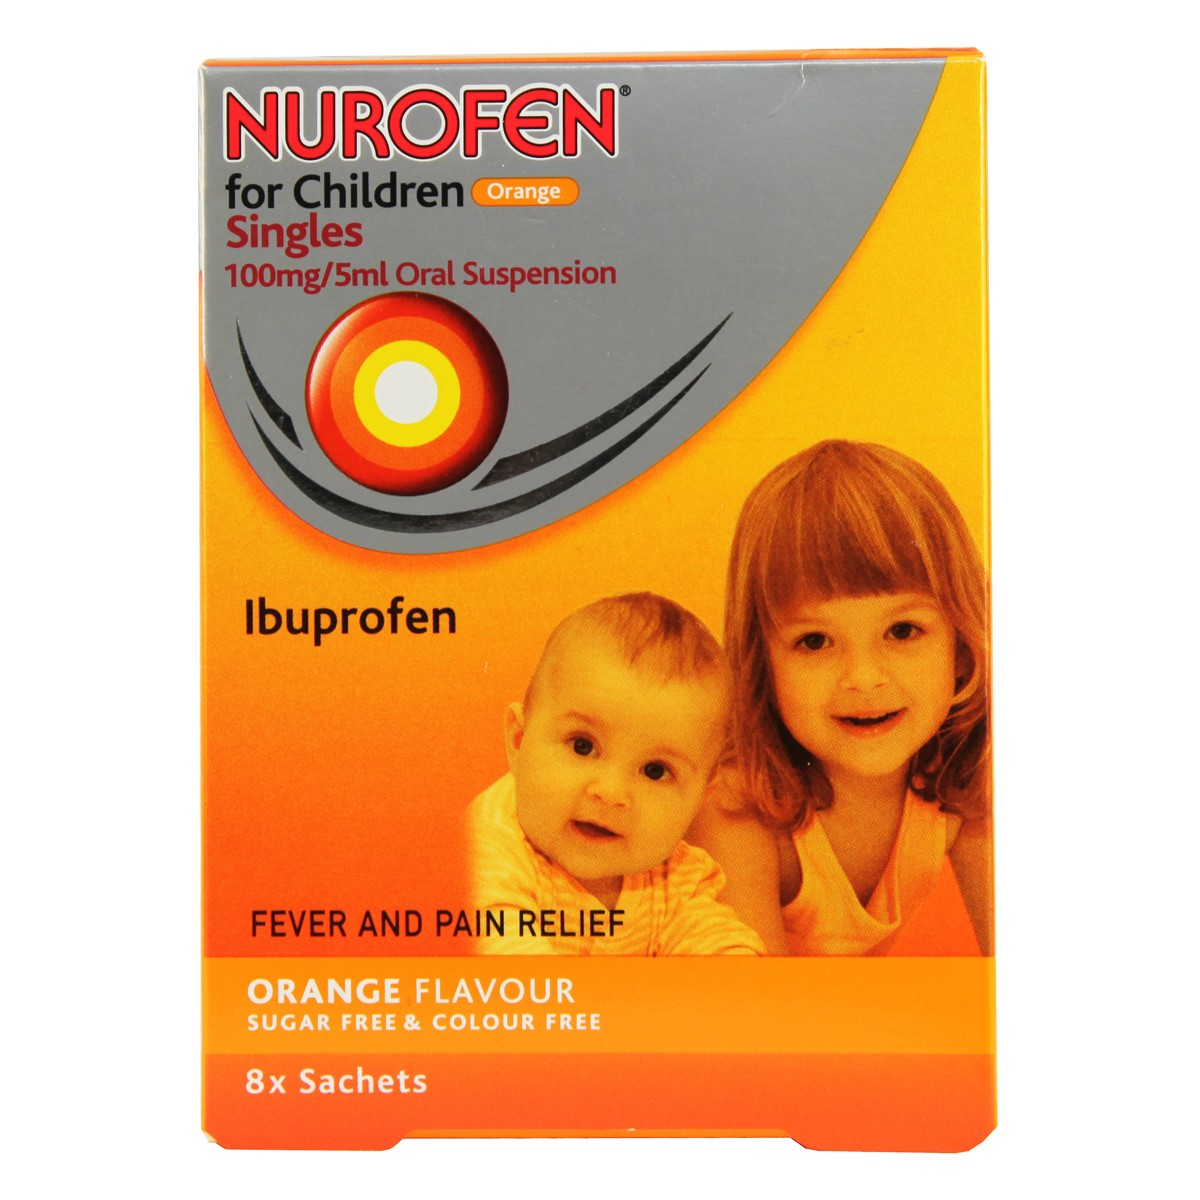 Nurofen For Children Orange Oral Suspension Sachets